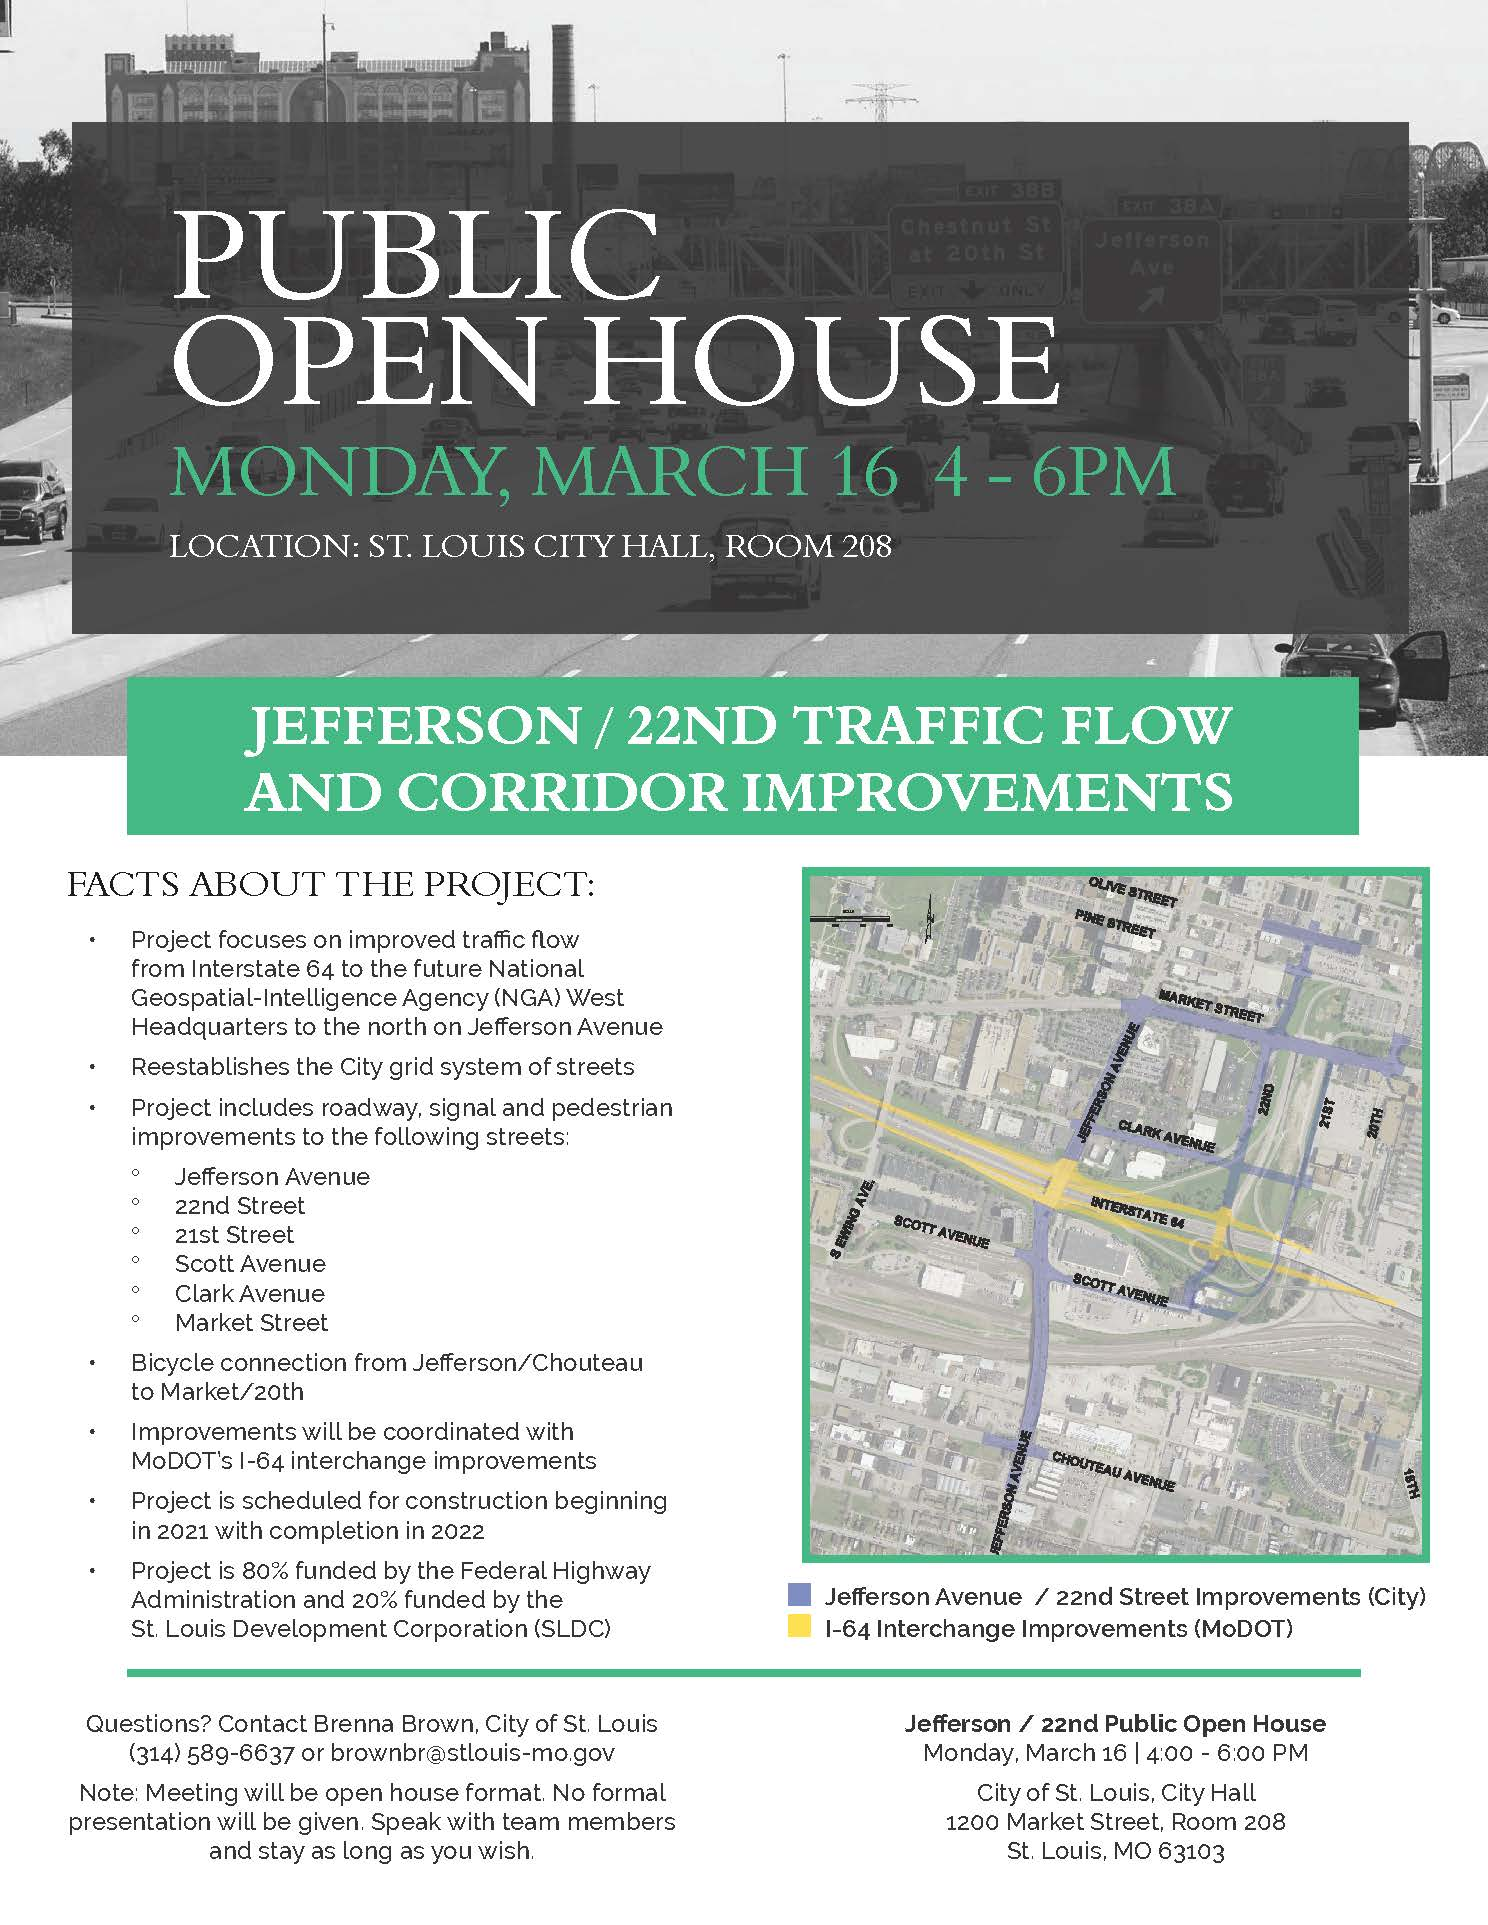 Public Open House Flyer